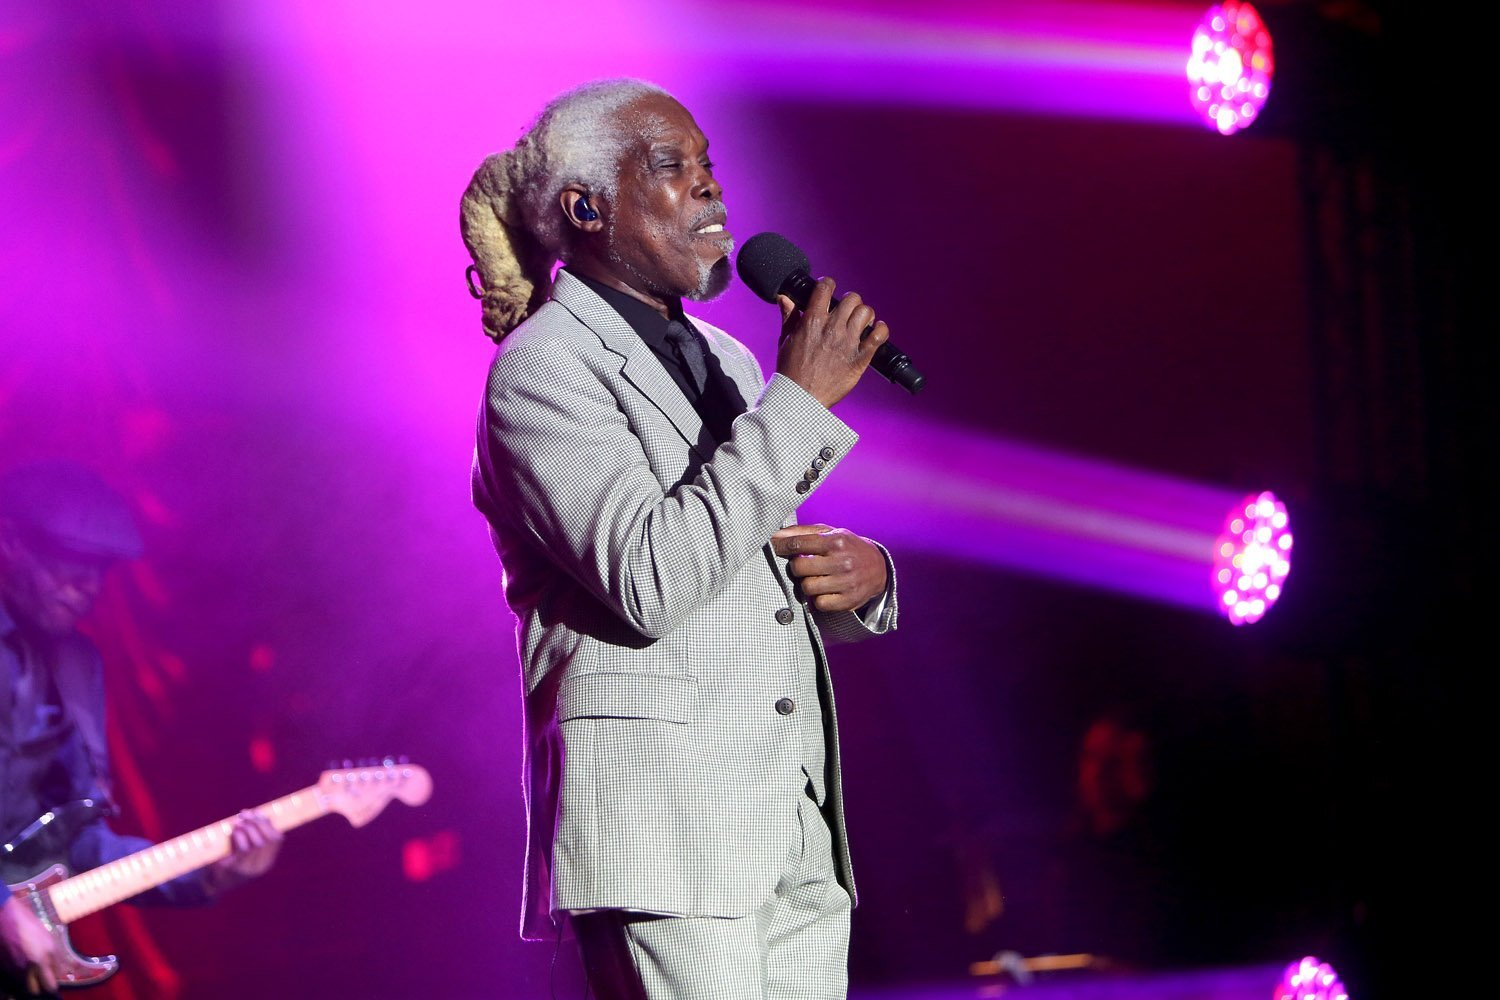 Billy Ocean @ Plymouth Pavilions 29th March 2017 - www.leapimages.co.uk